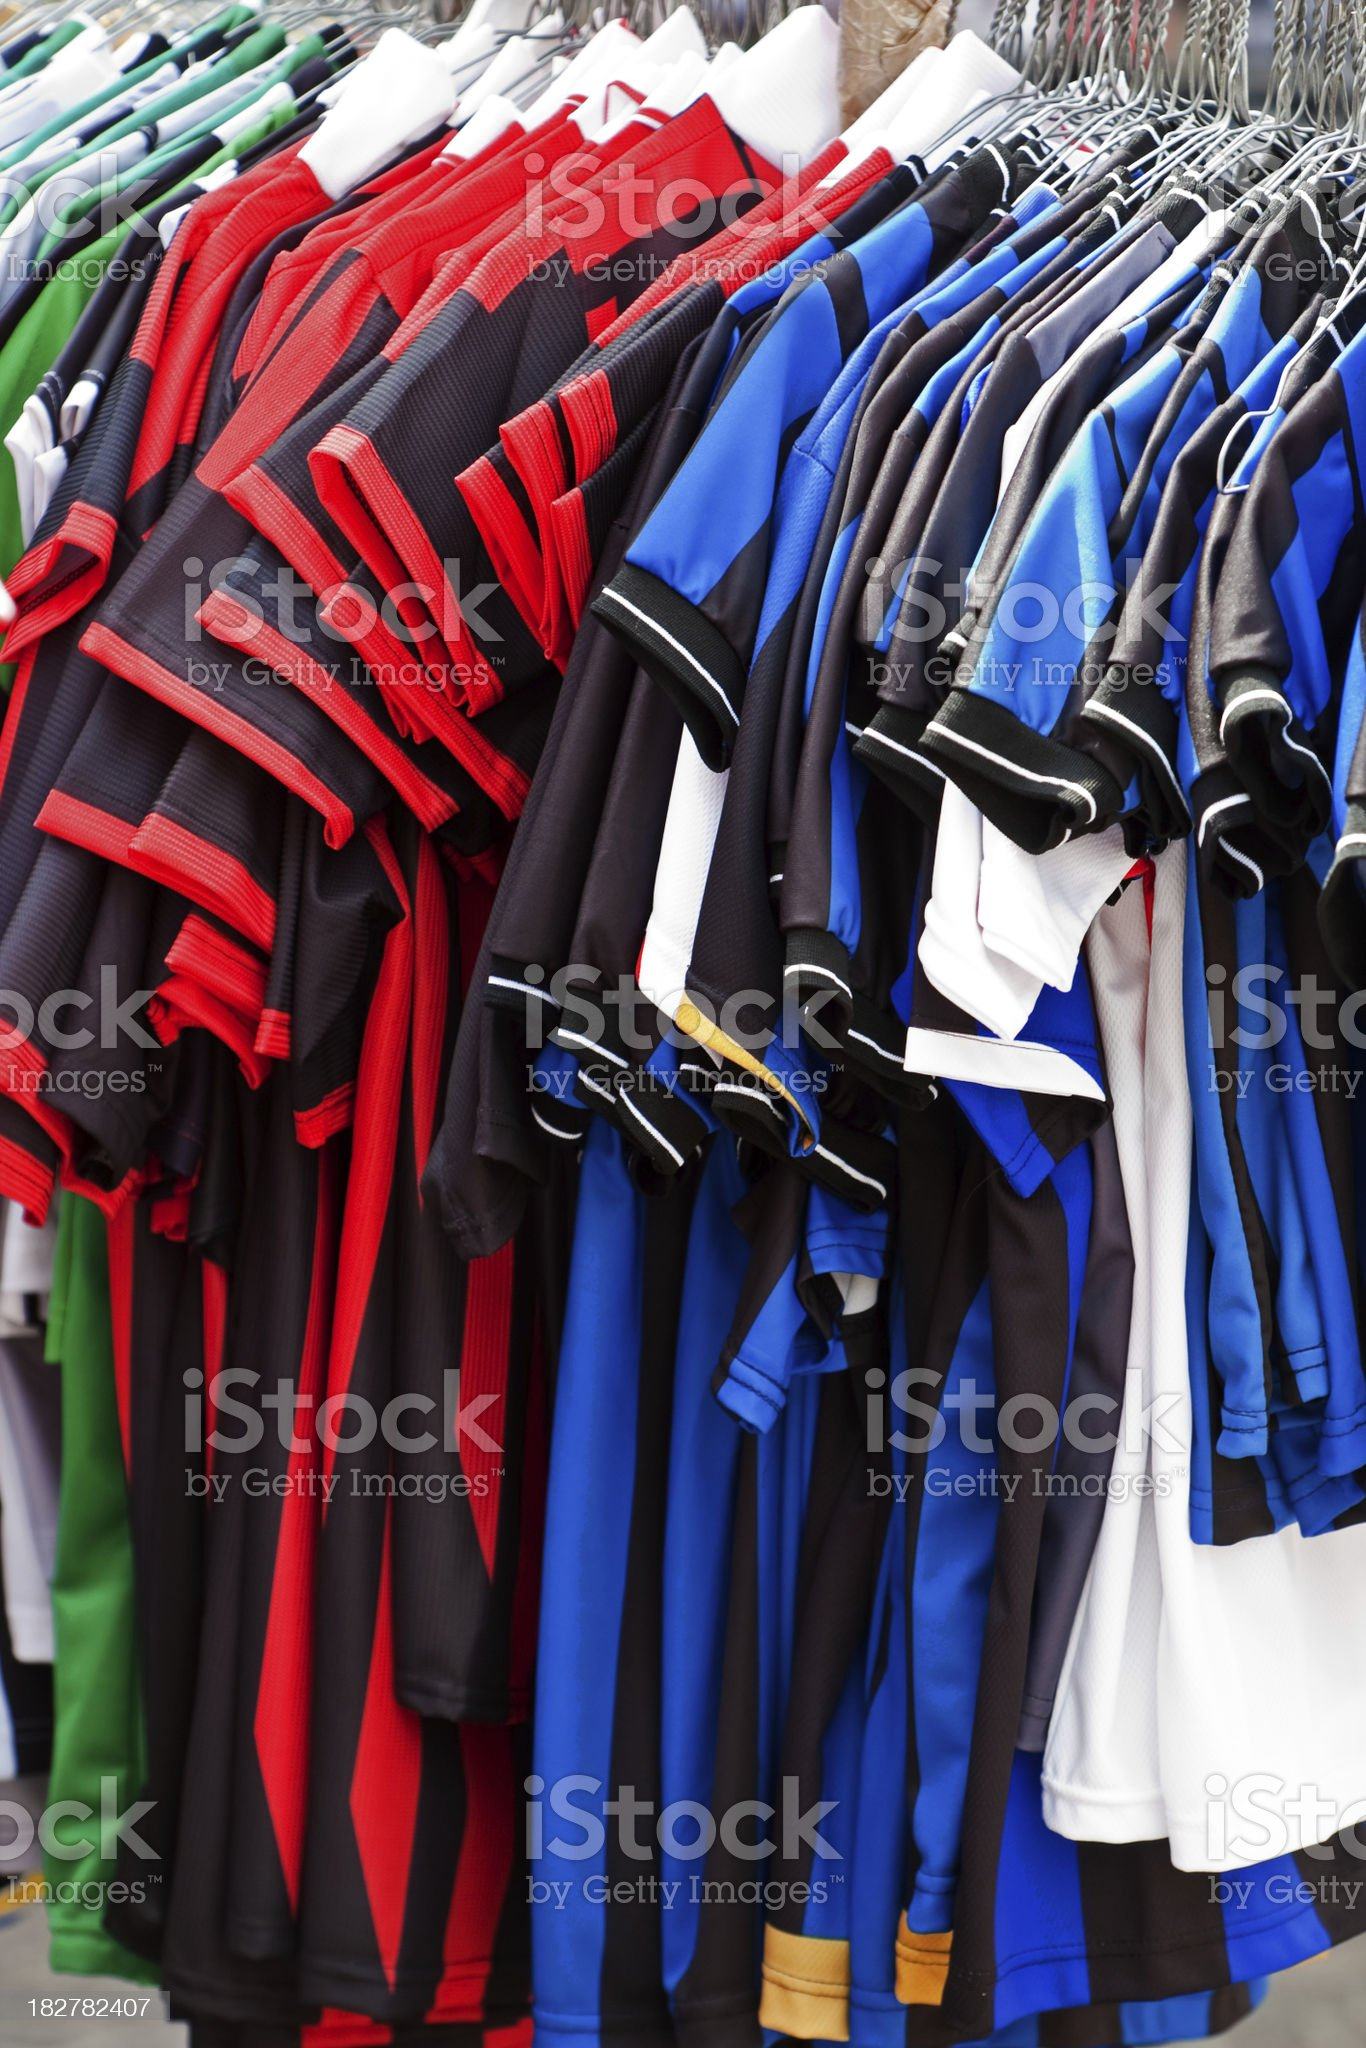 Soccer Jerseys royalty-free stock photo